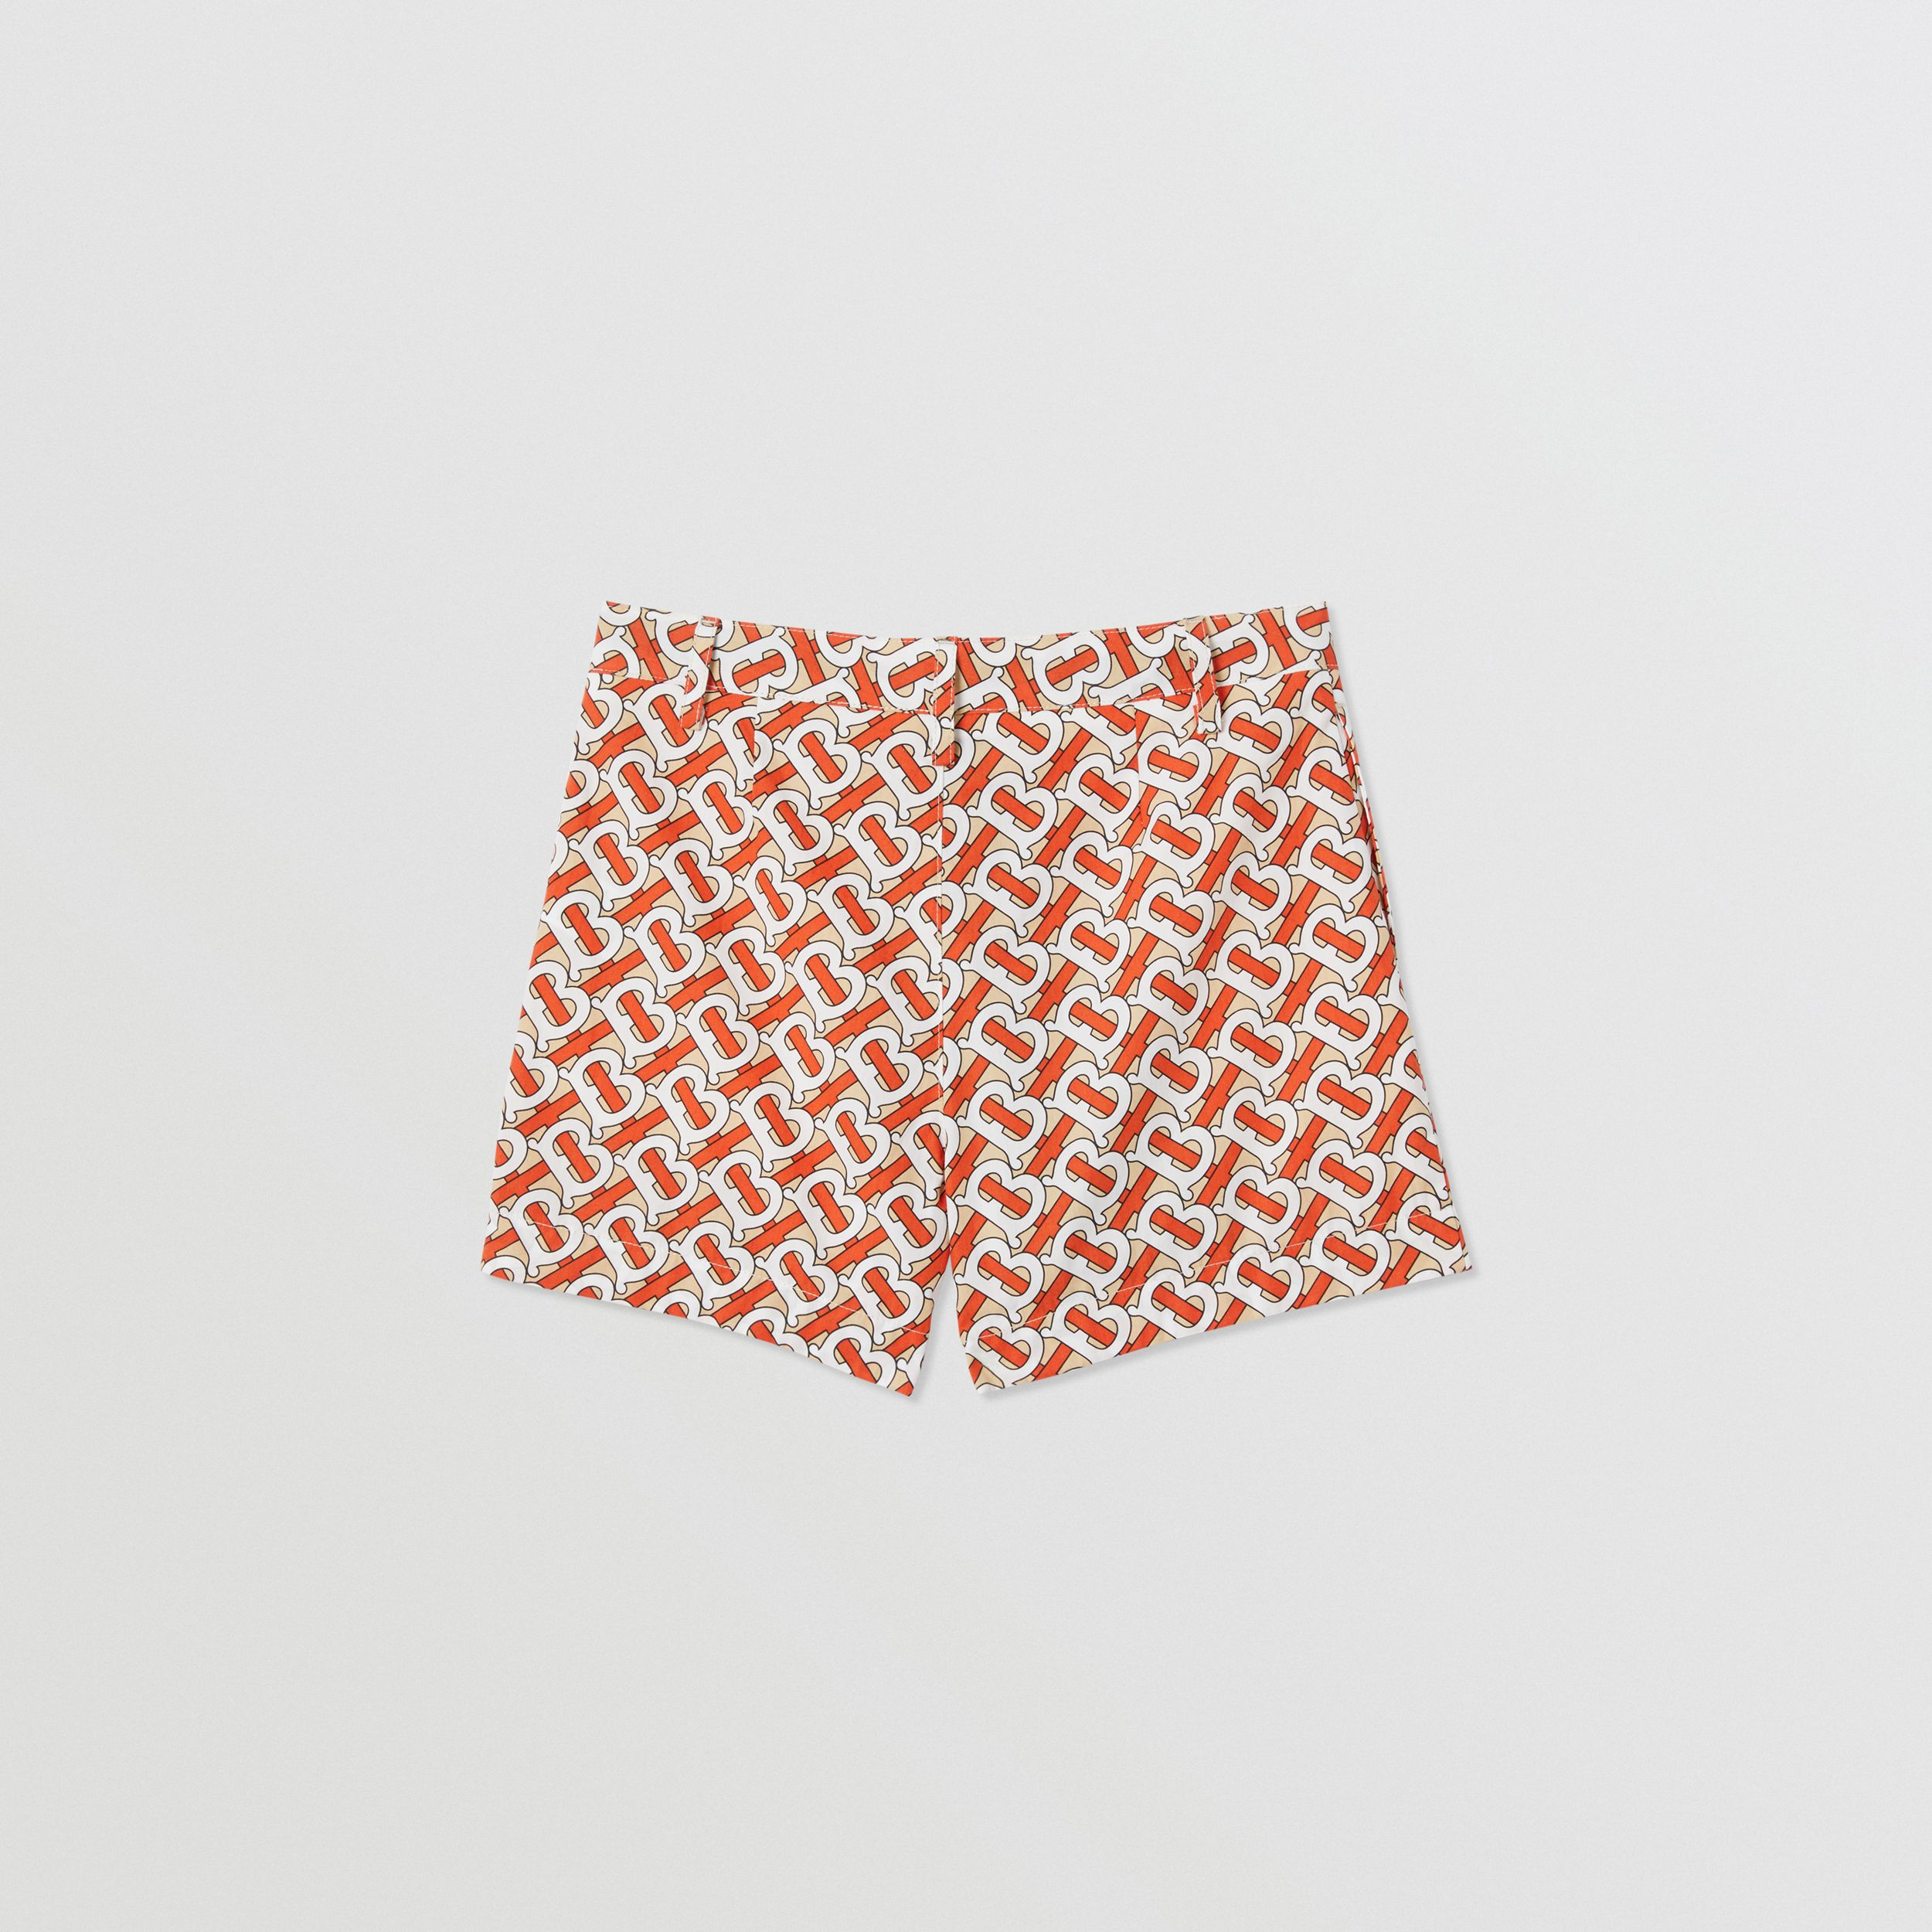 Monogram Print Cotton Poplin Shorts in Vermilion Red | Burberry United Kingdom - 4